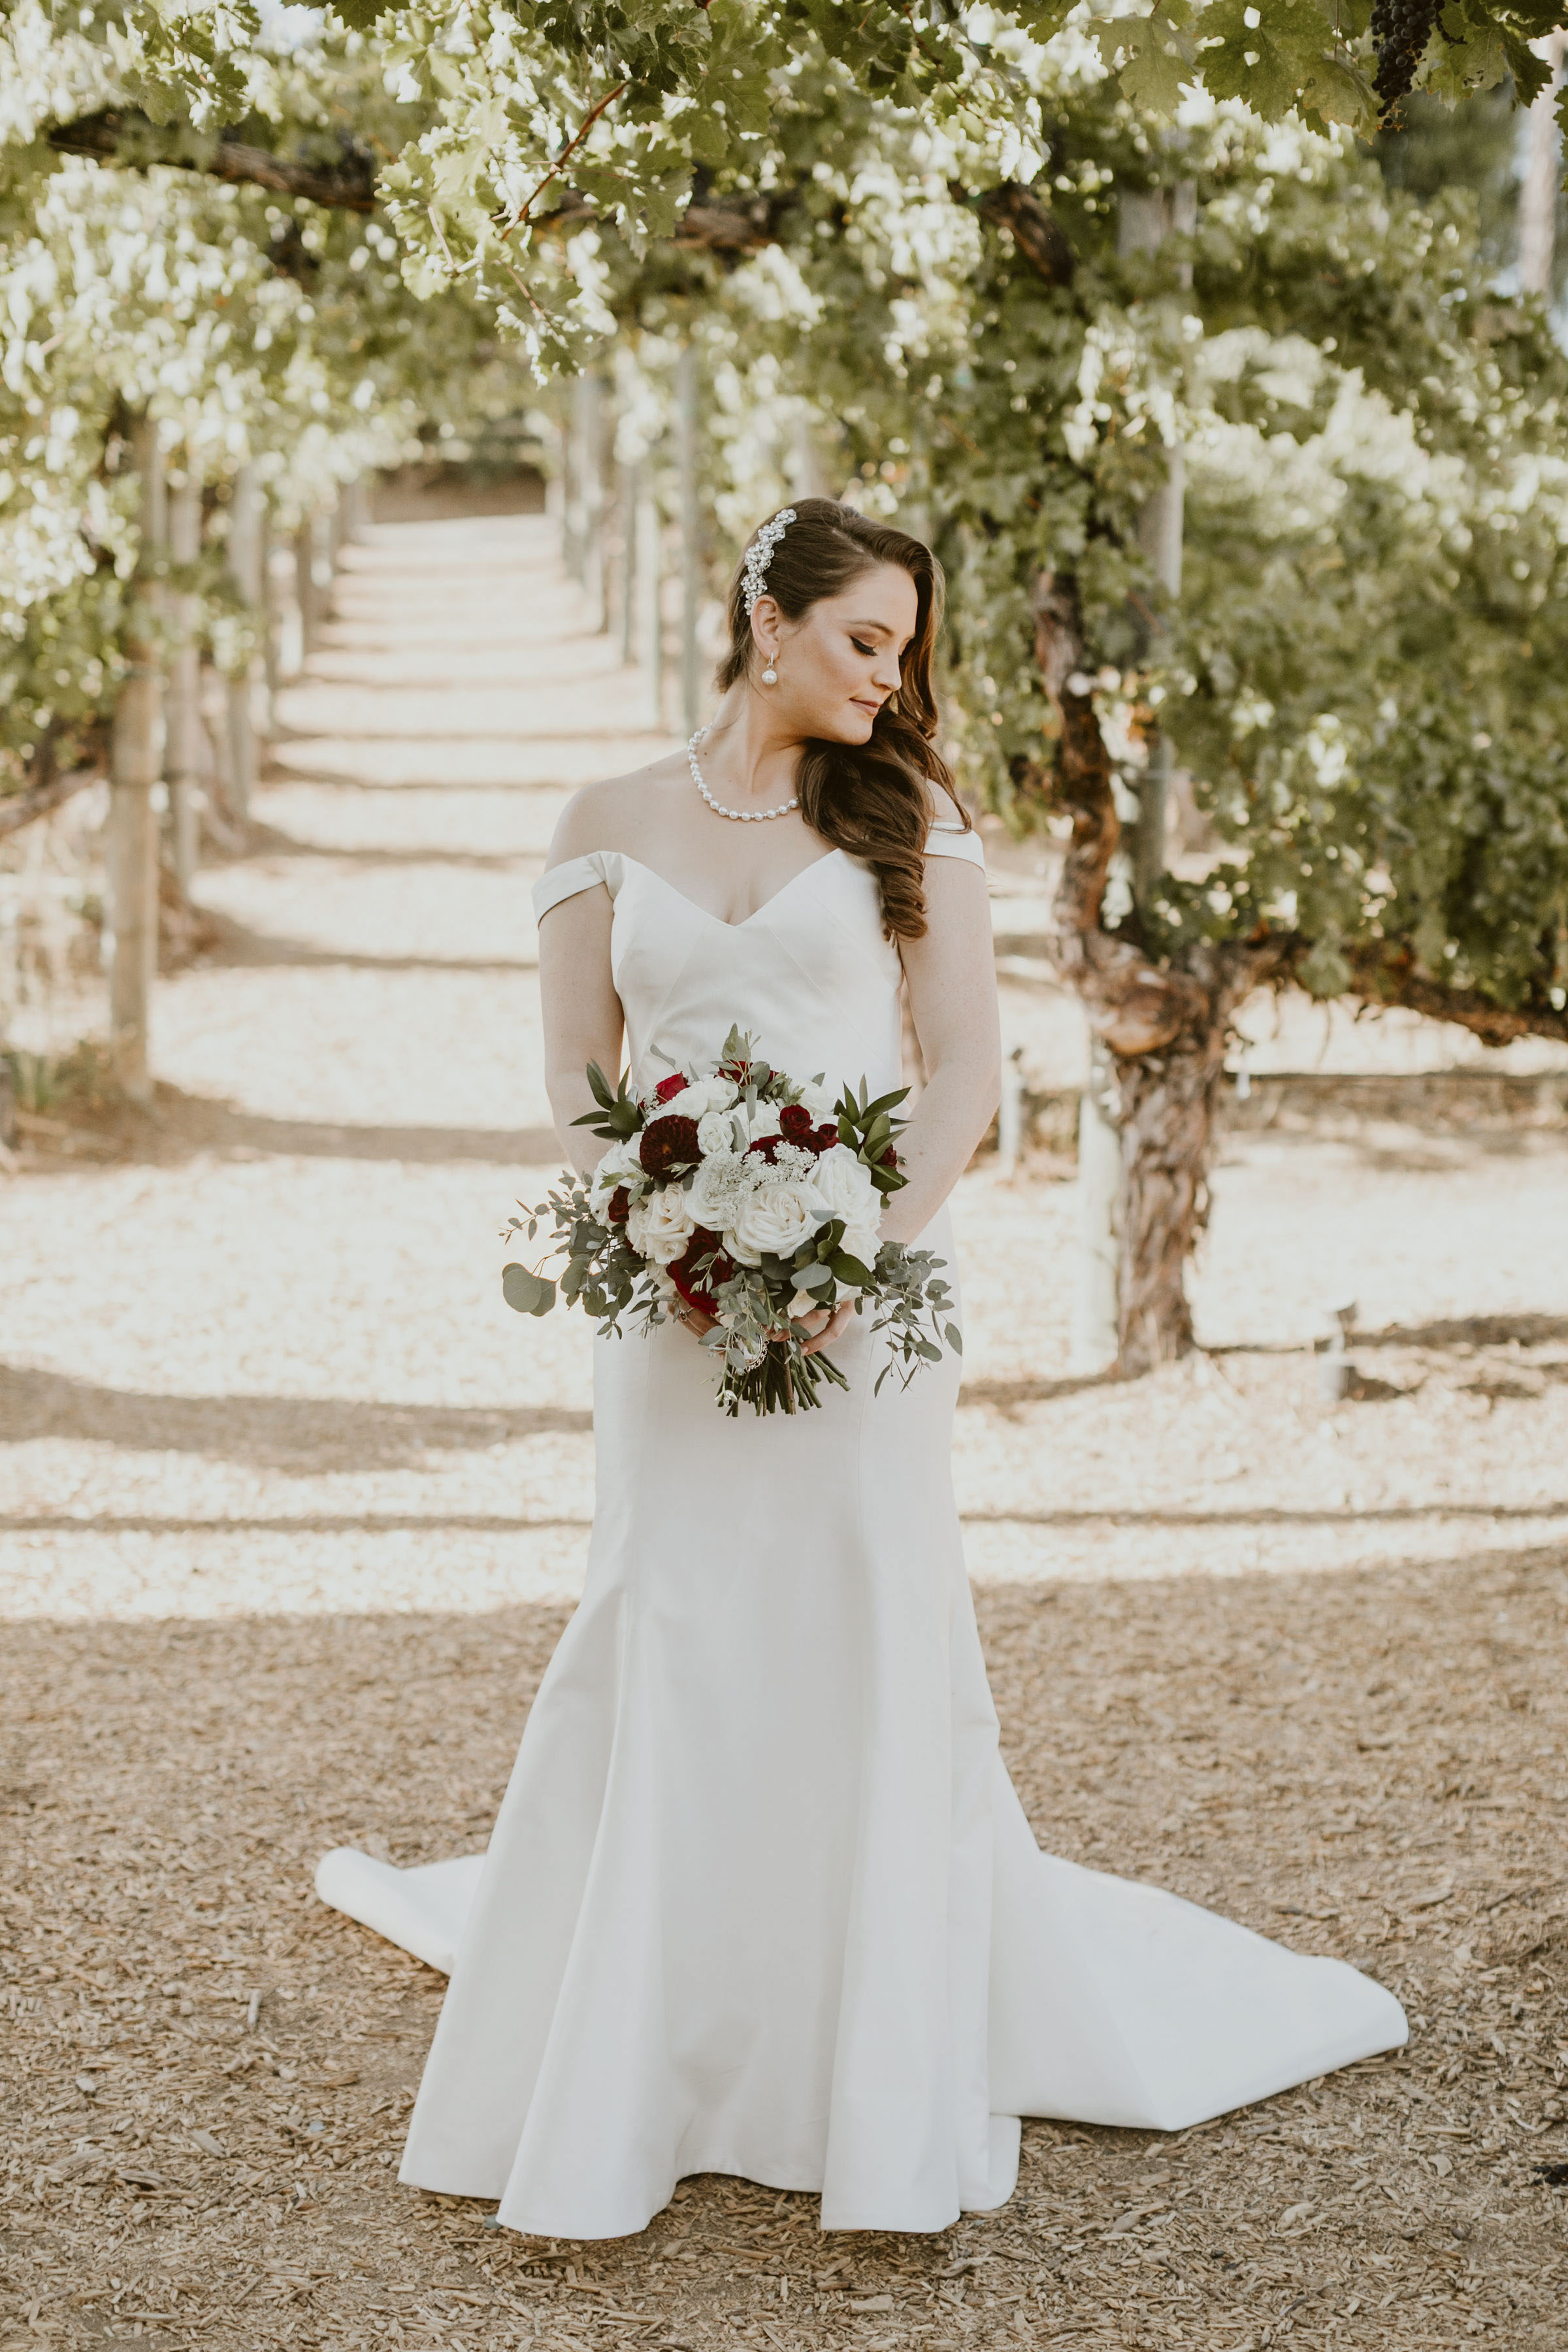 Domenica Beauty _ Hair and Makeup Artist _Wedding _ Temecula, CA _ Catherine and Darryl _ 15.JPG